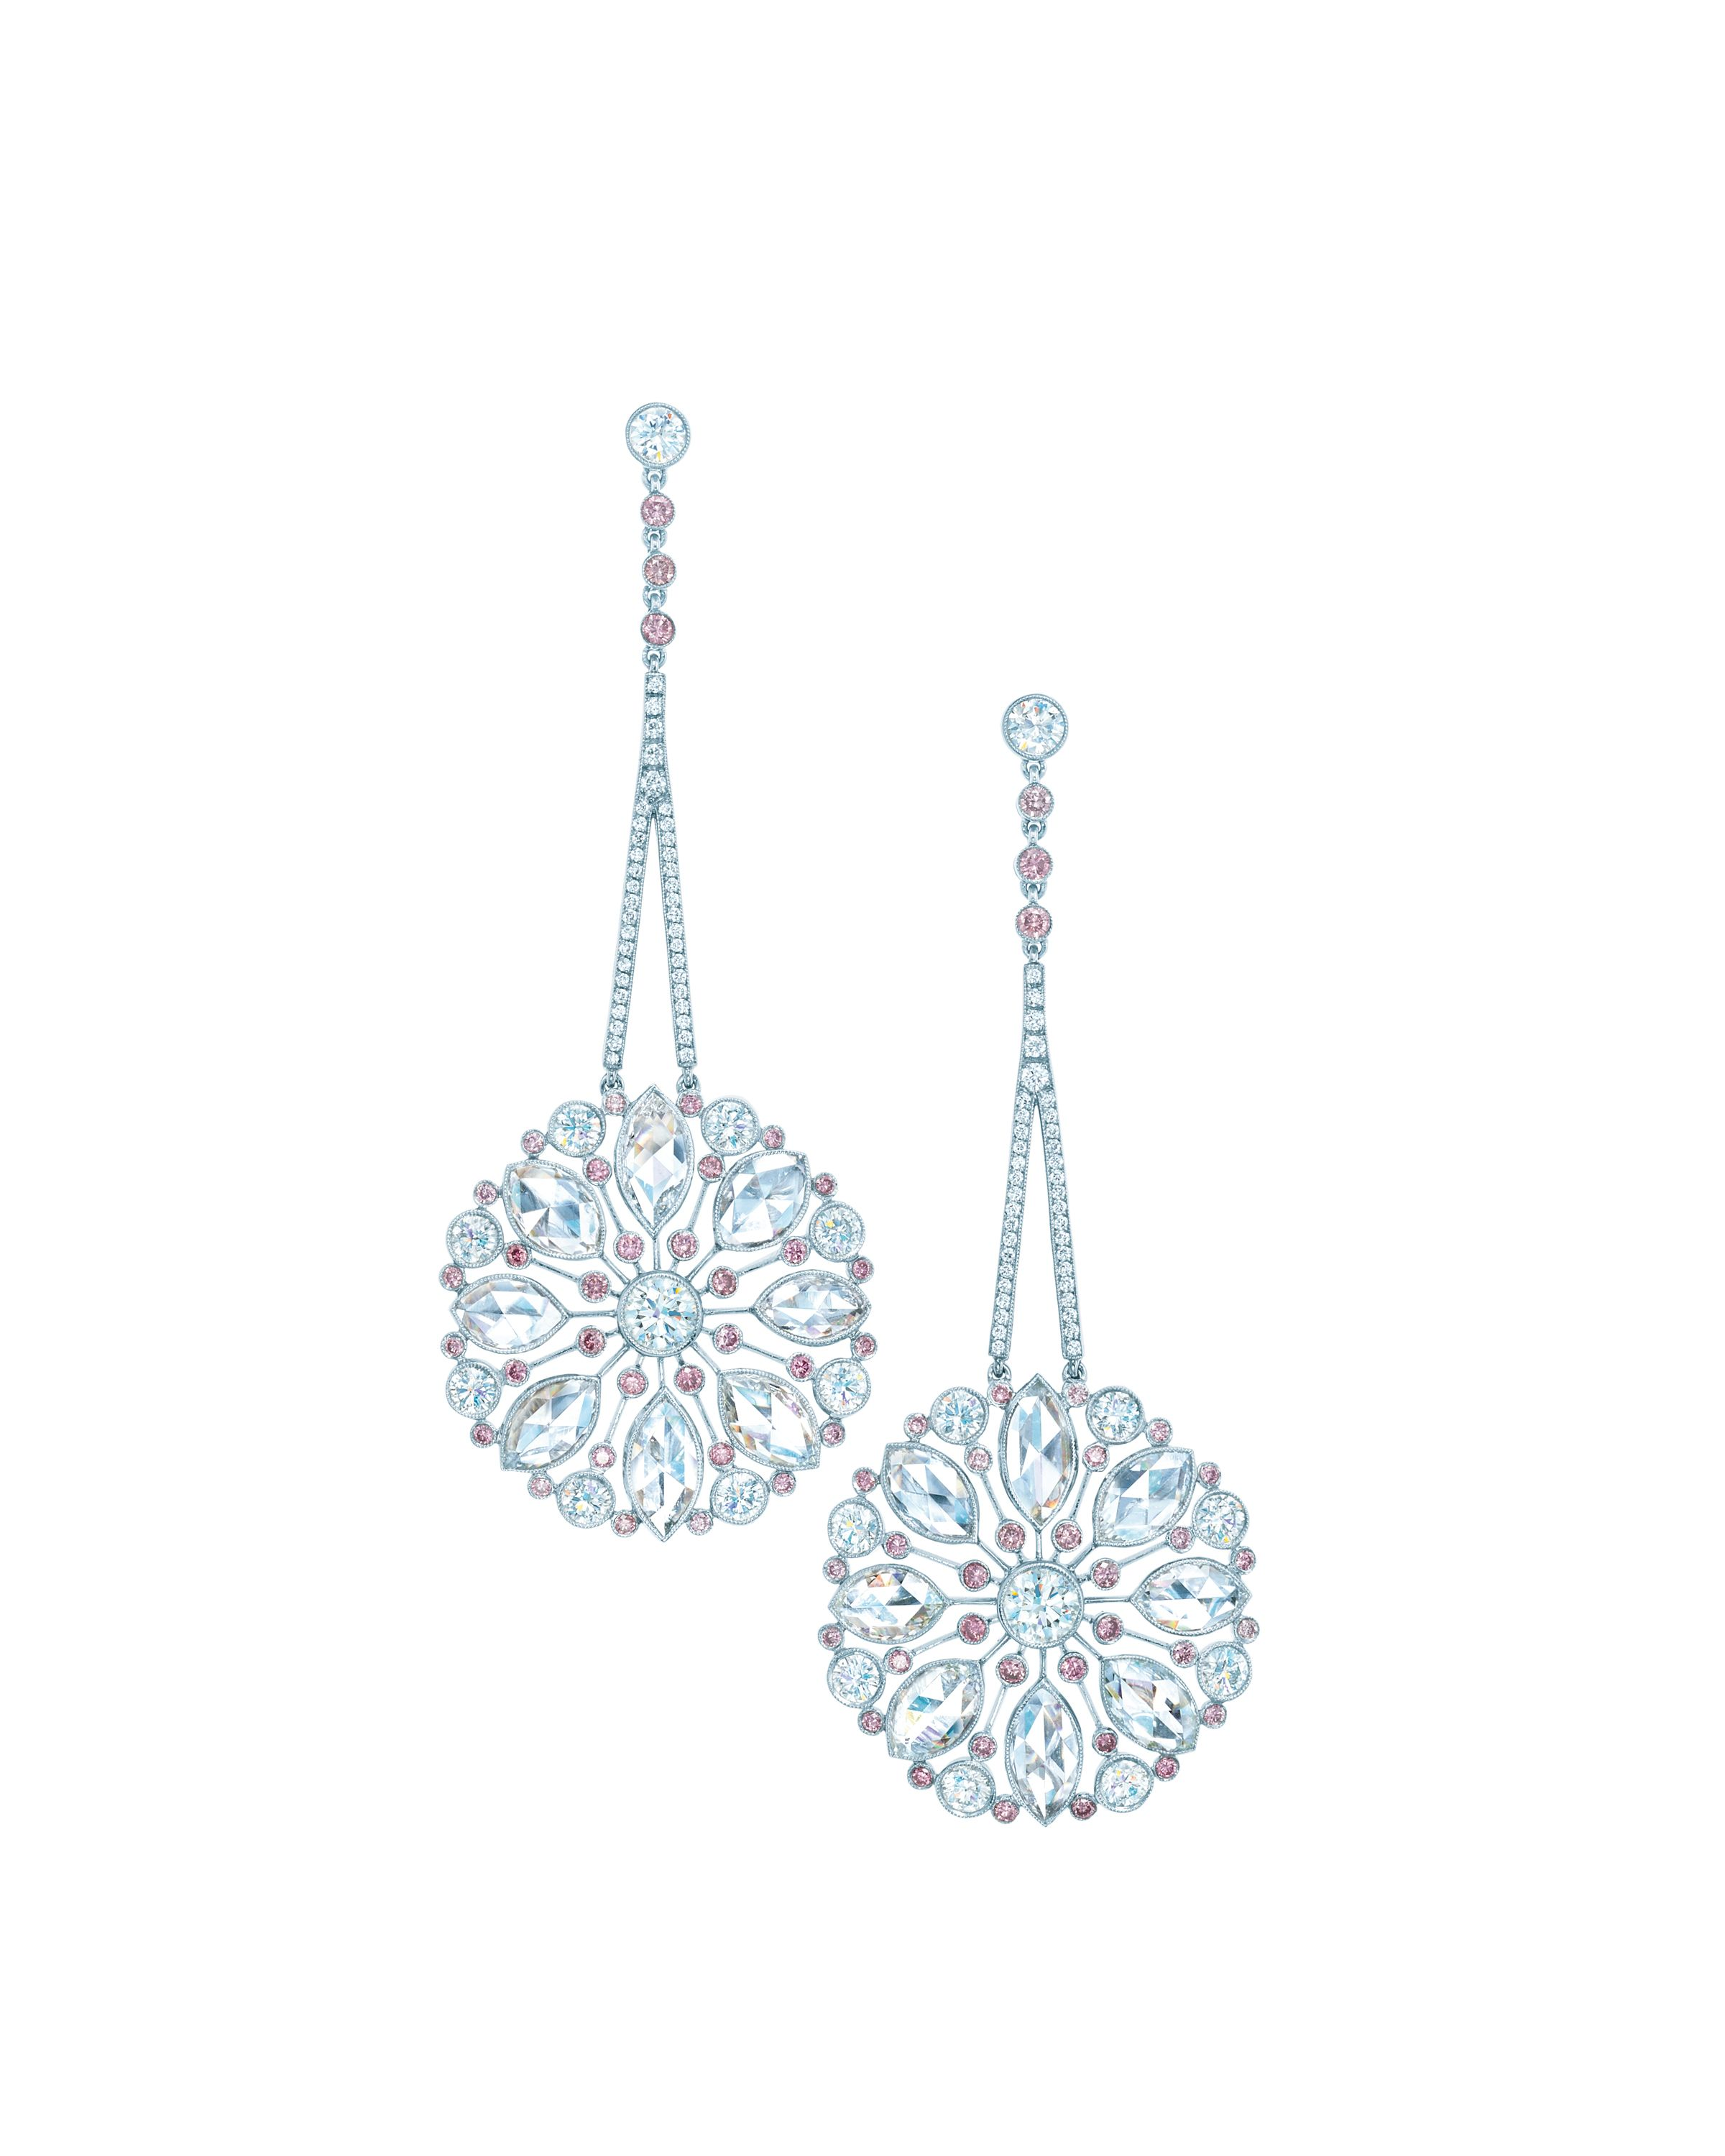 and pin tiffany jewelry diamond earrings emerald pinterest